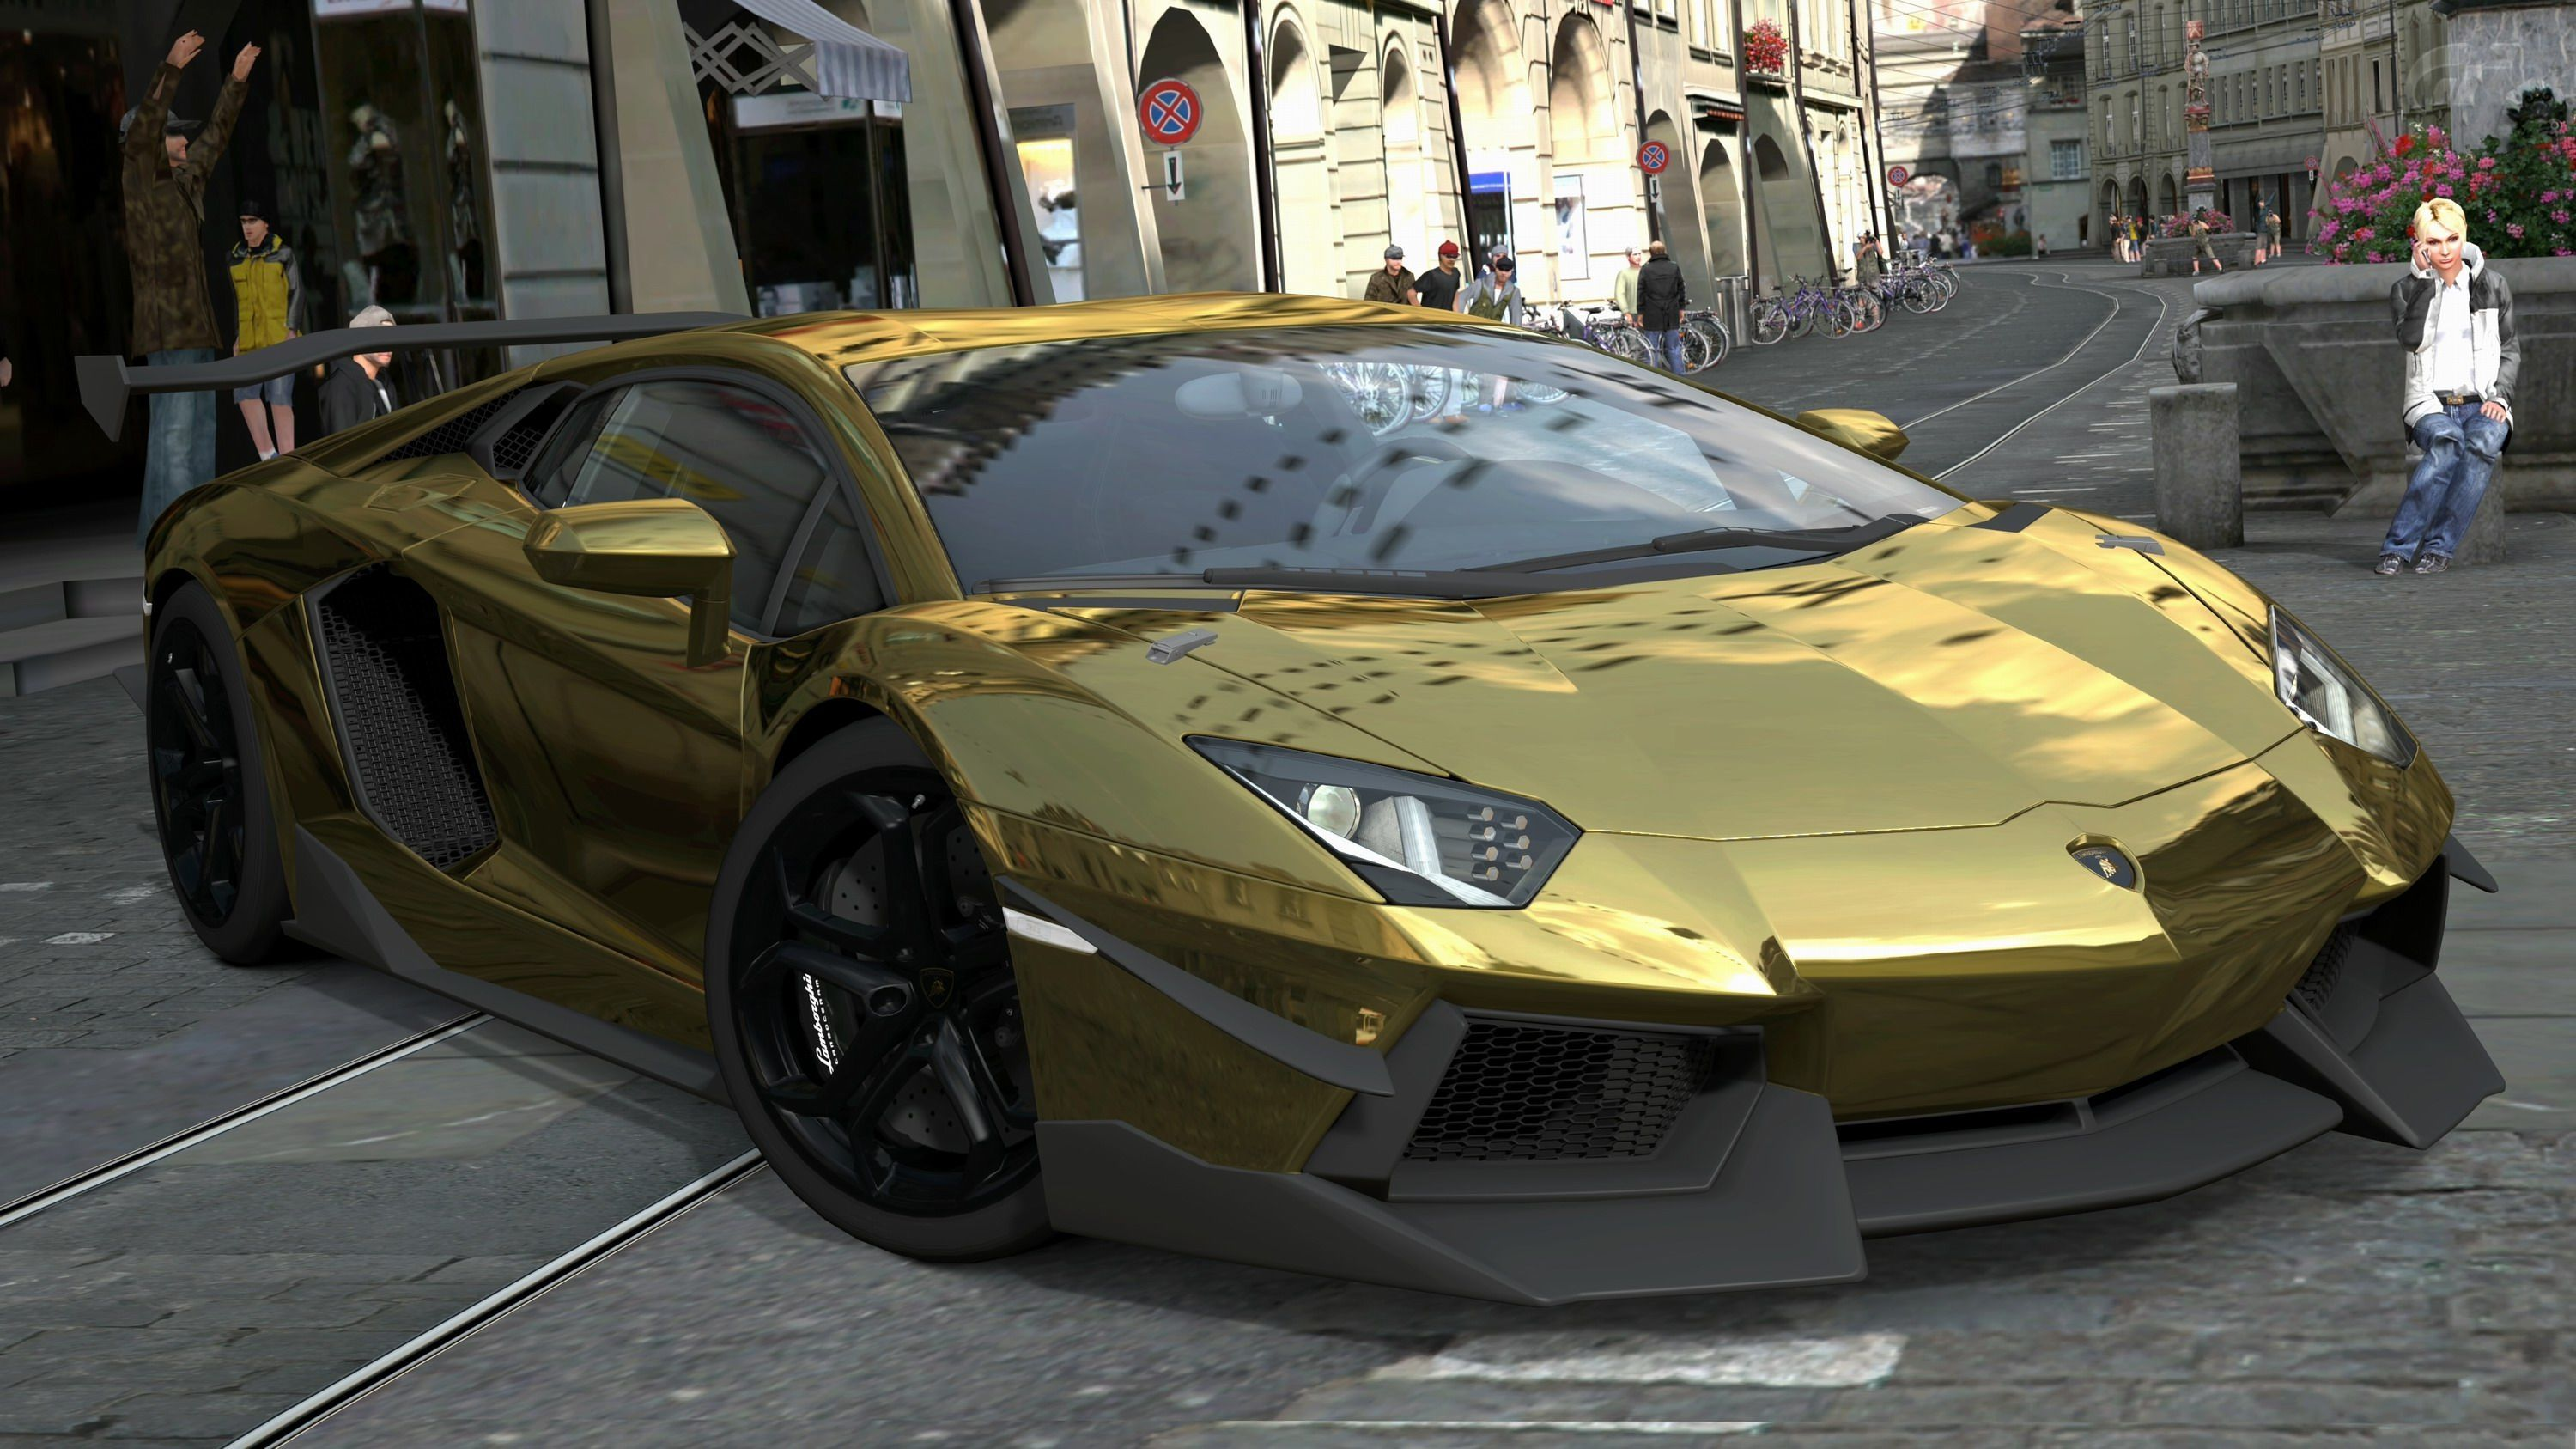 Lamborghini Aventador Gold 2355 Full HD Wallpaper Desktop